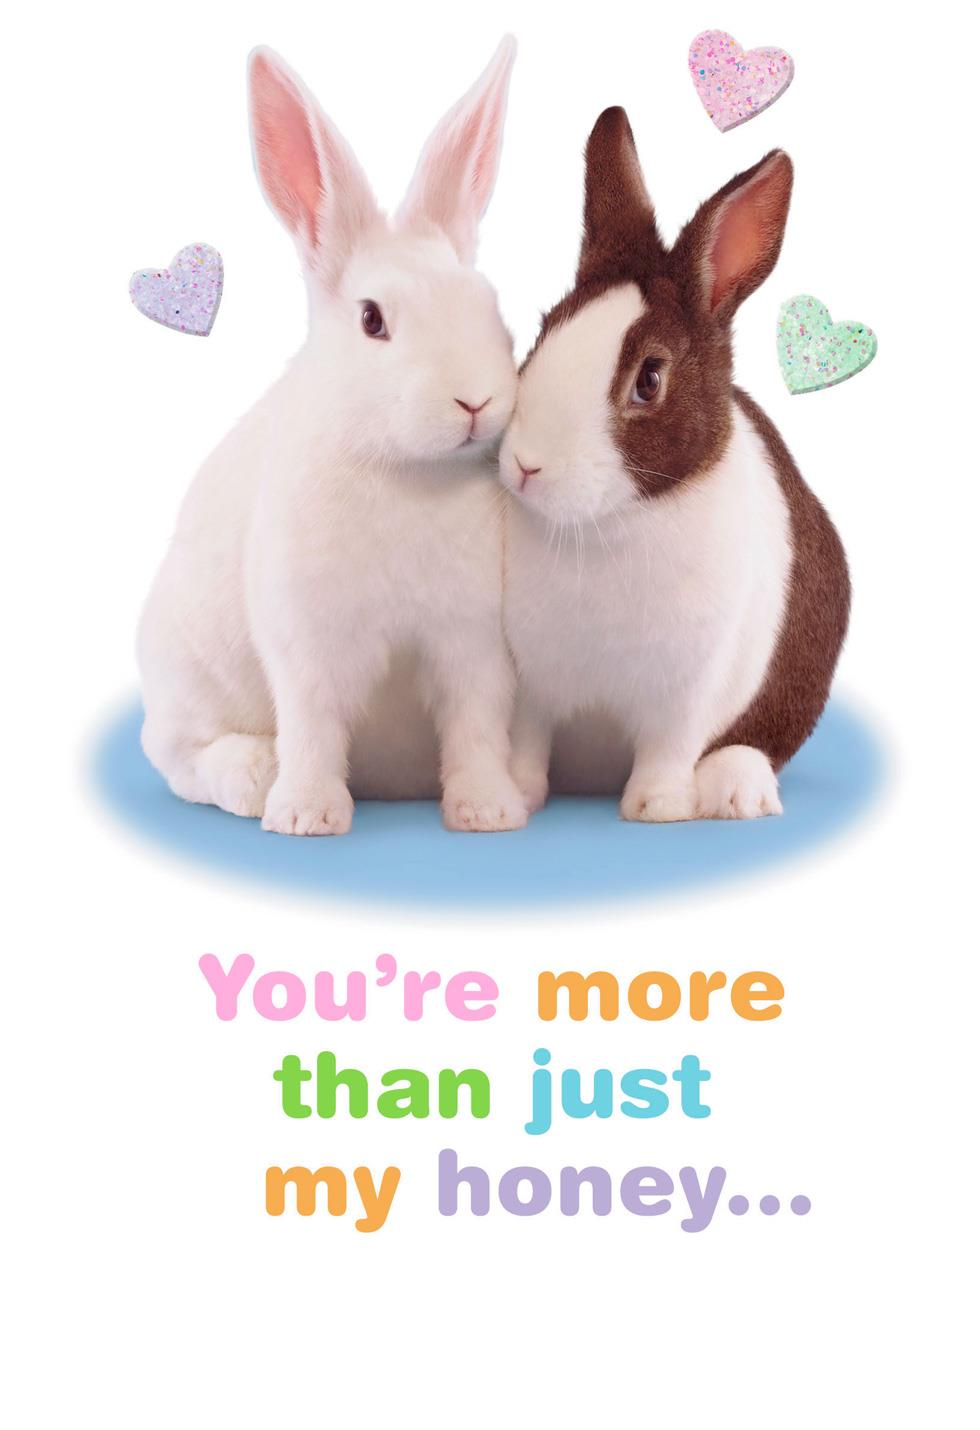 snuggle bunny romantic easter card - end of life